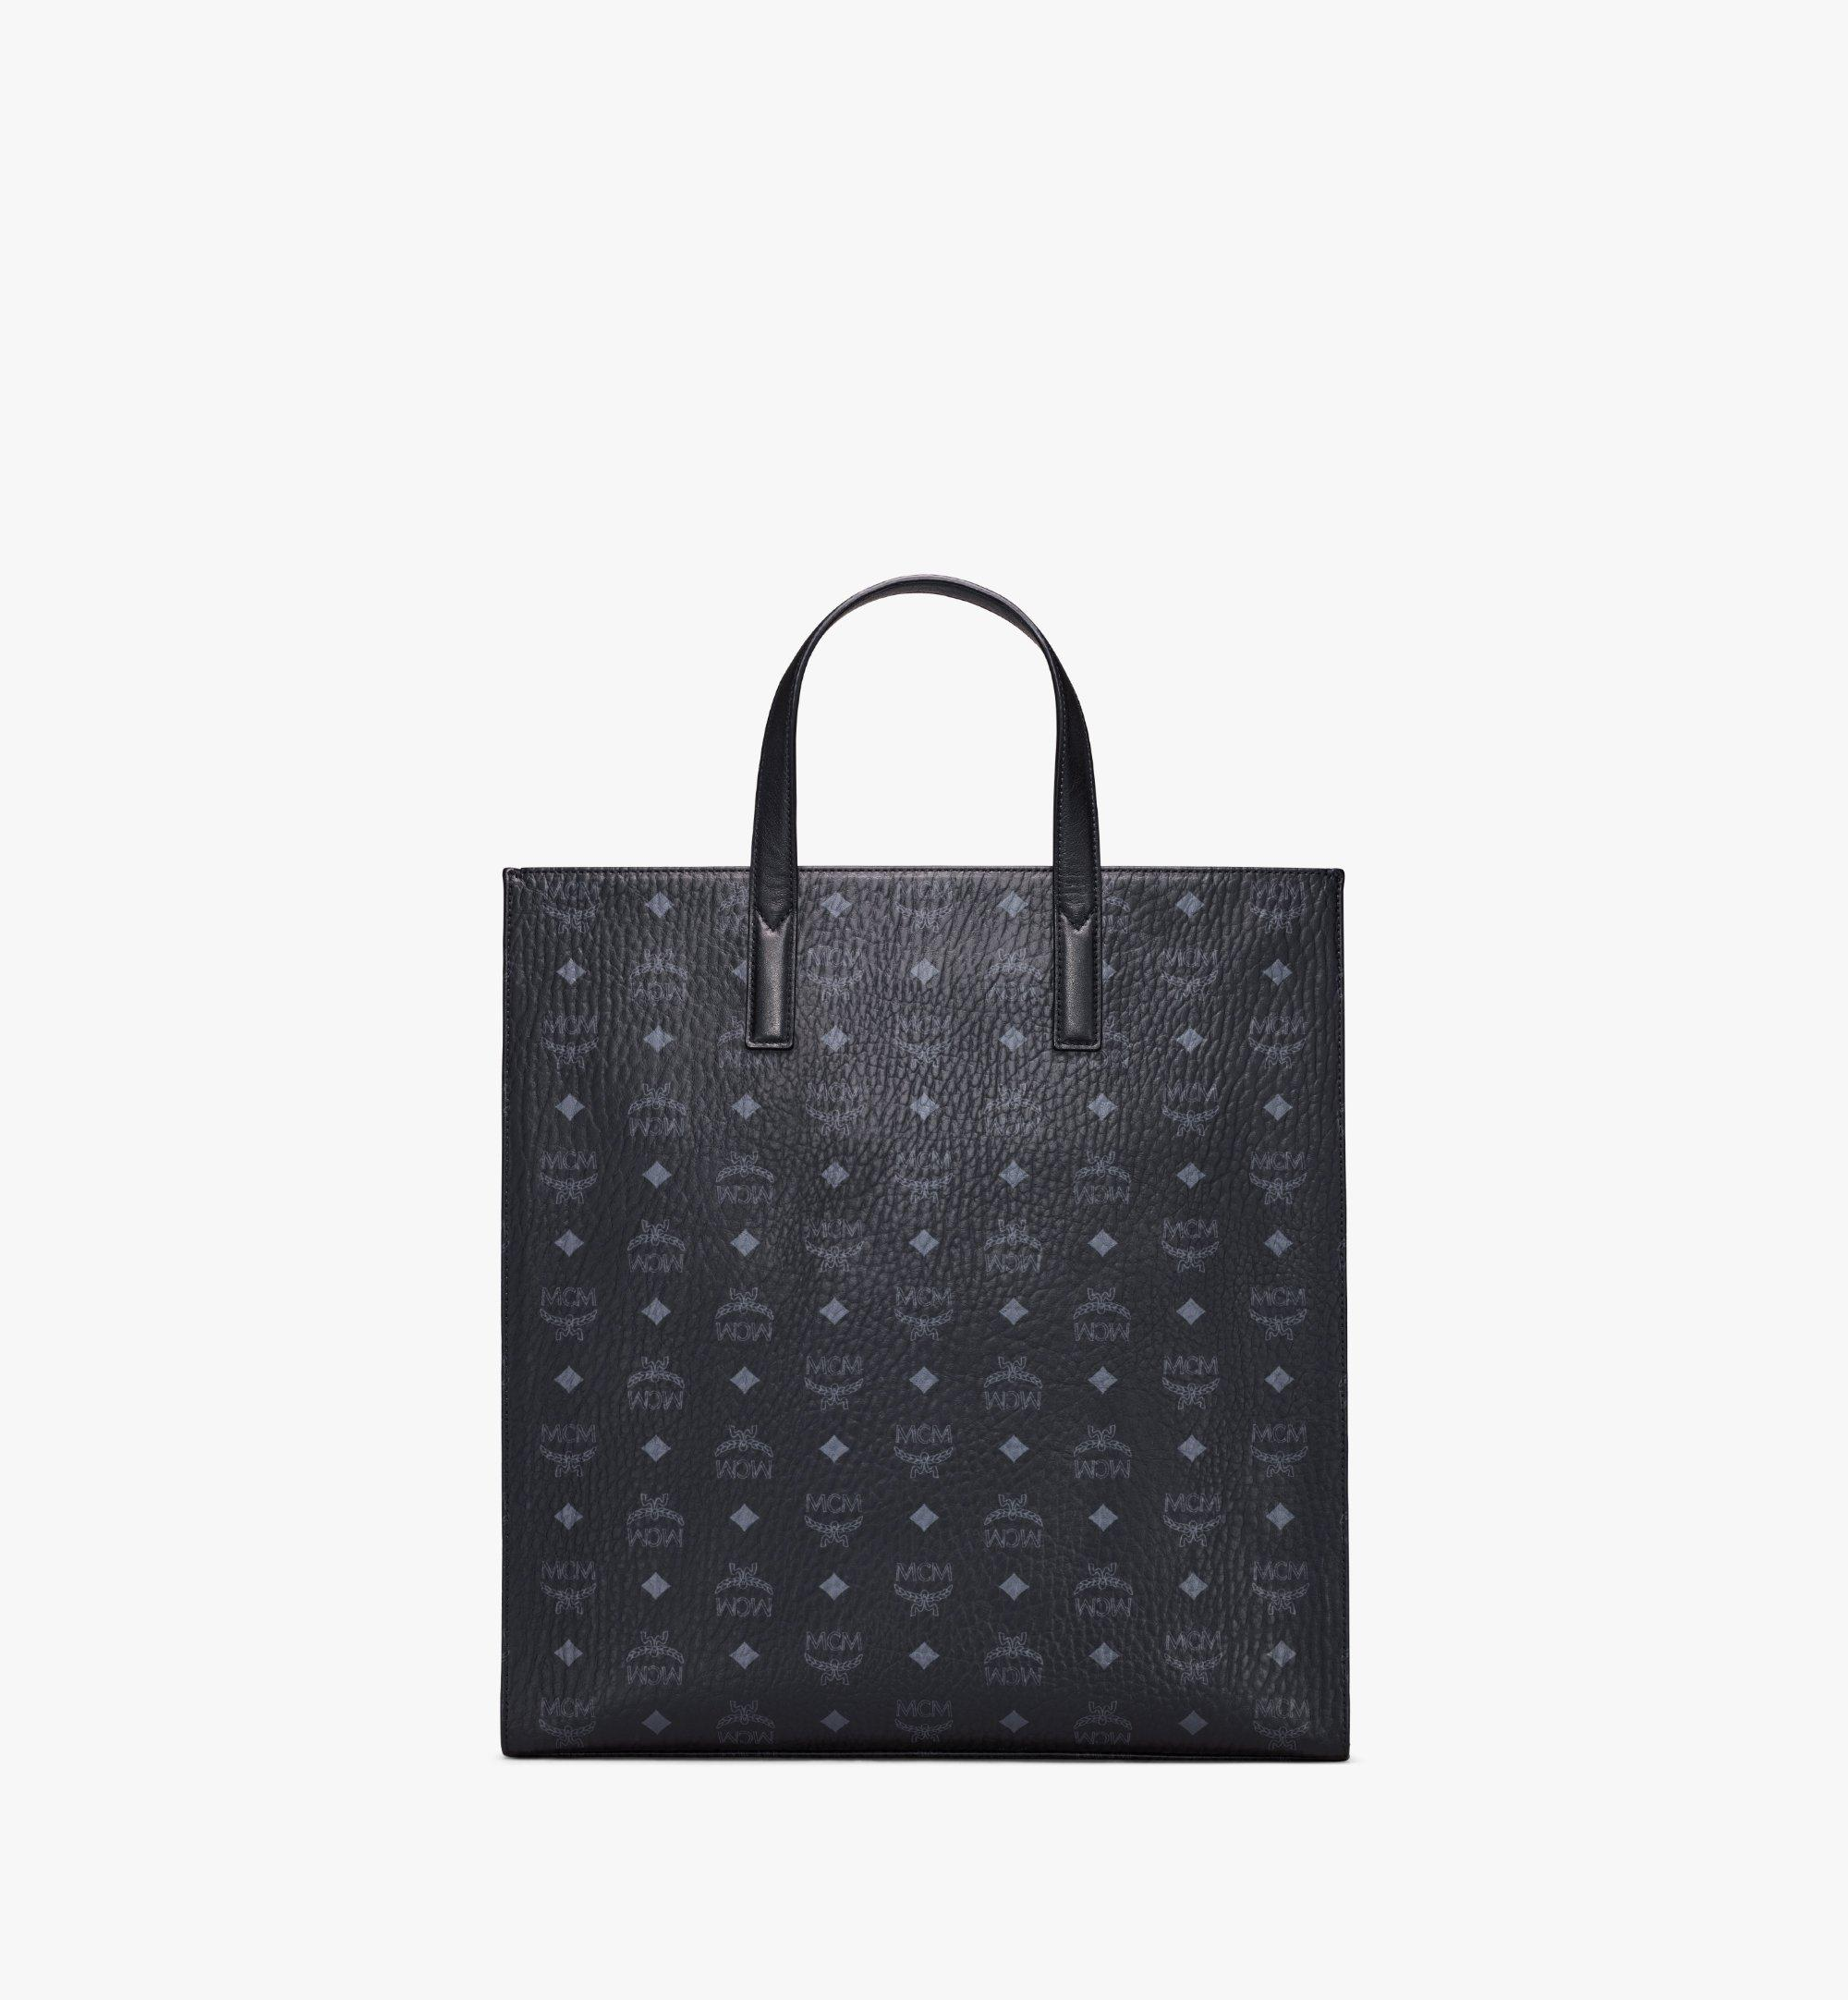 MCM Klassik Tote in Visetos Black MMTAAKC01BK001 Alternate View 4